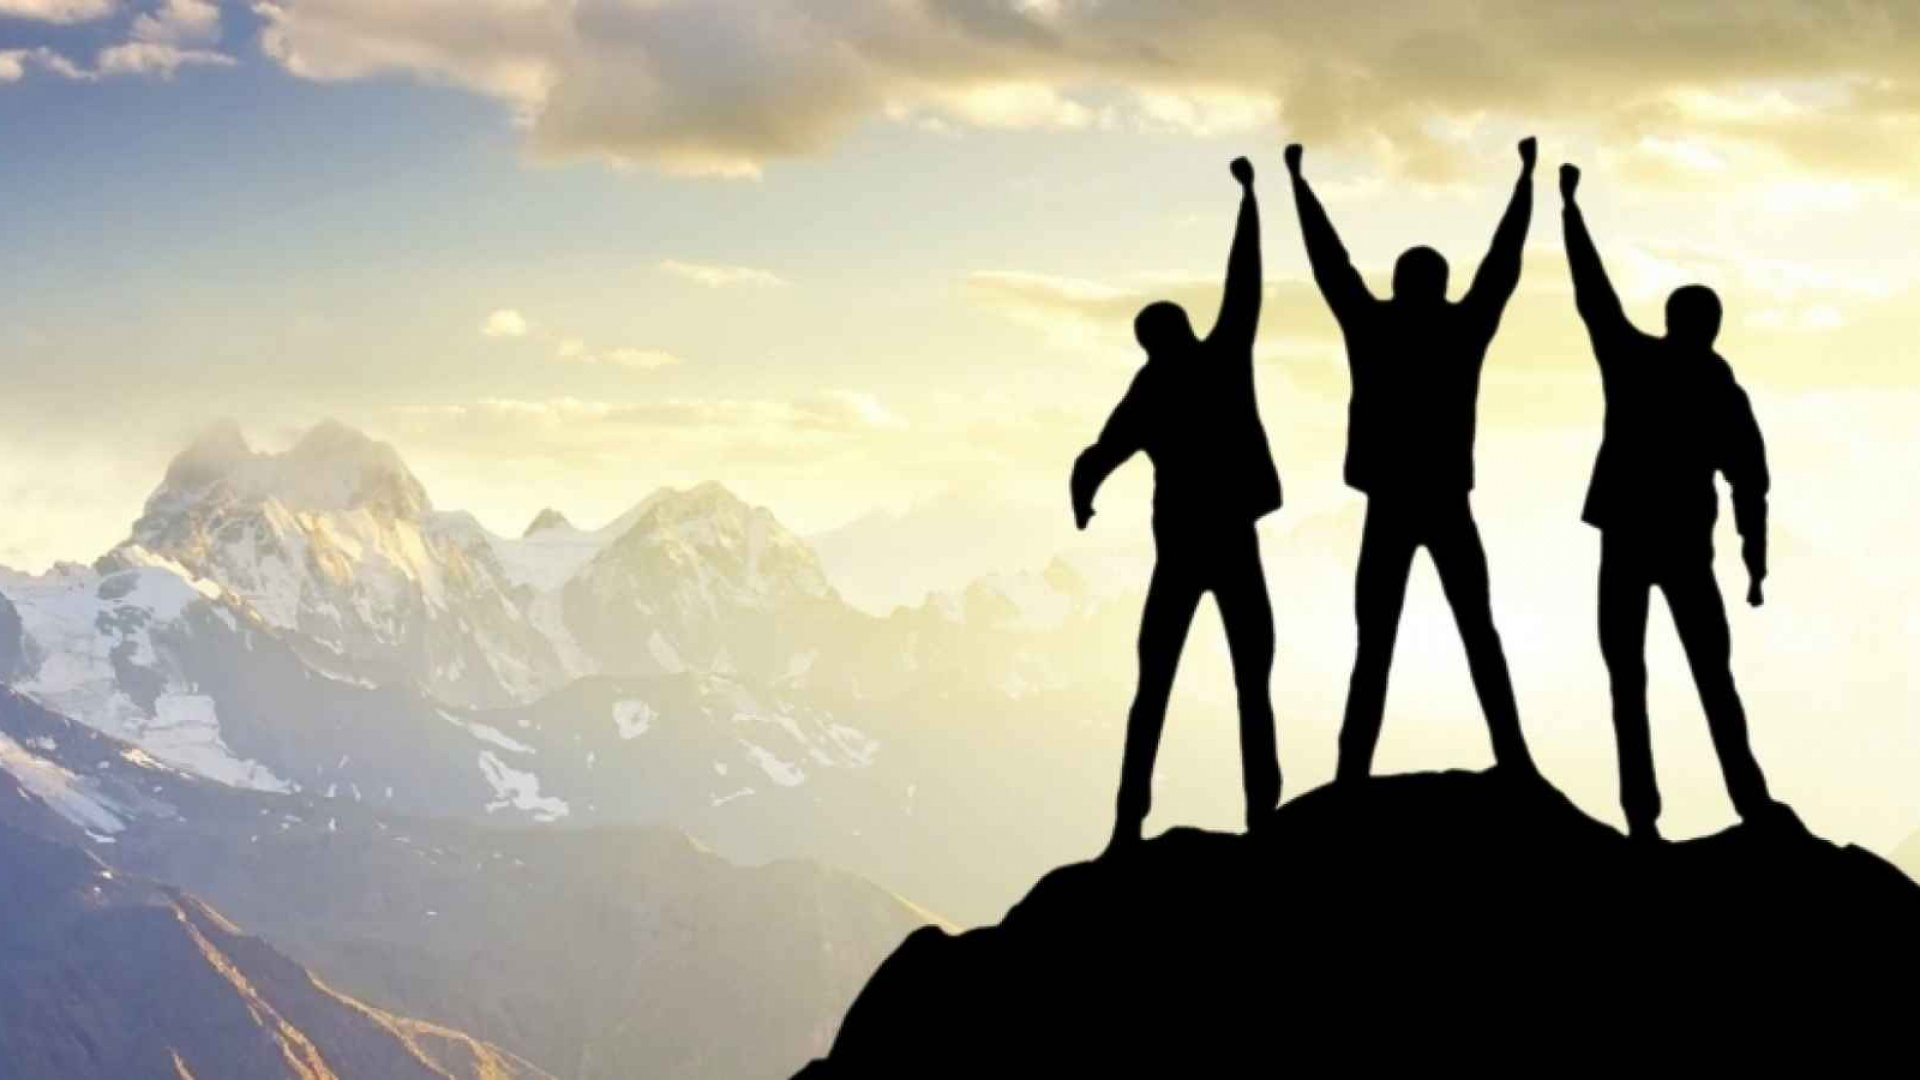 The Simple Formula For Making Every Day a Victory